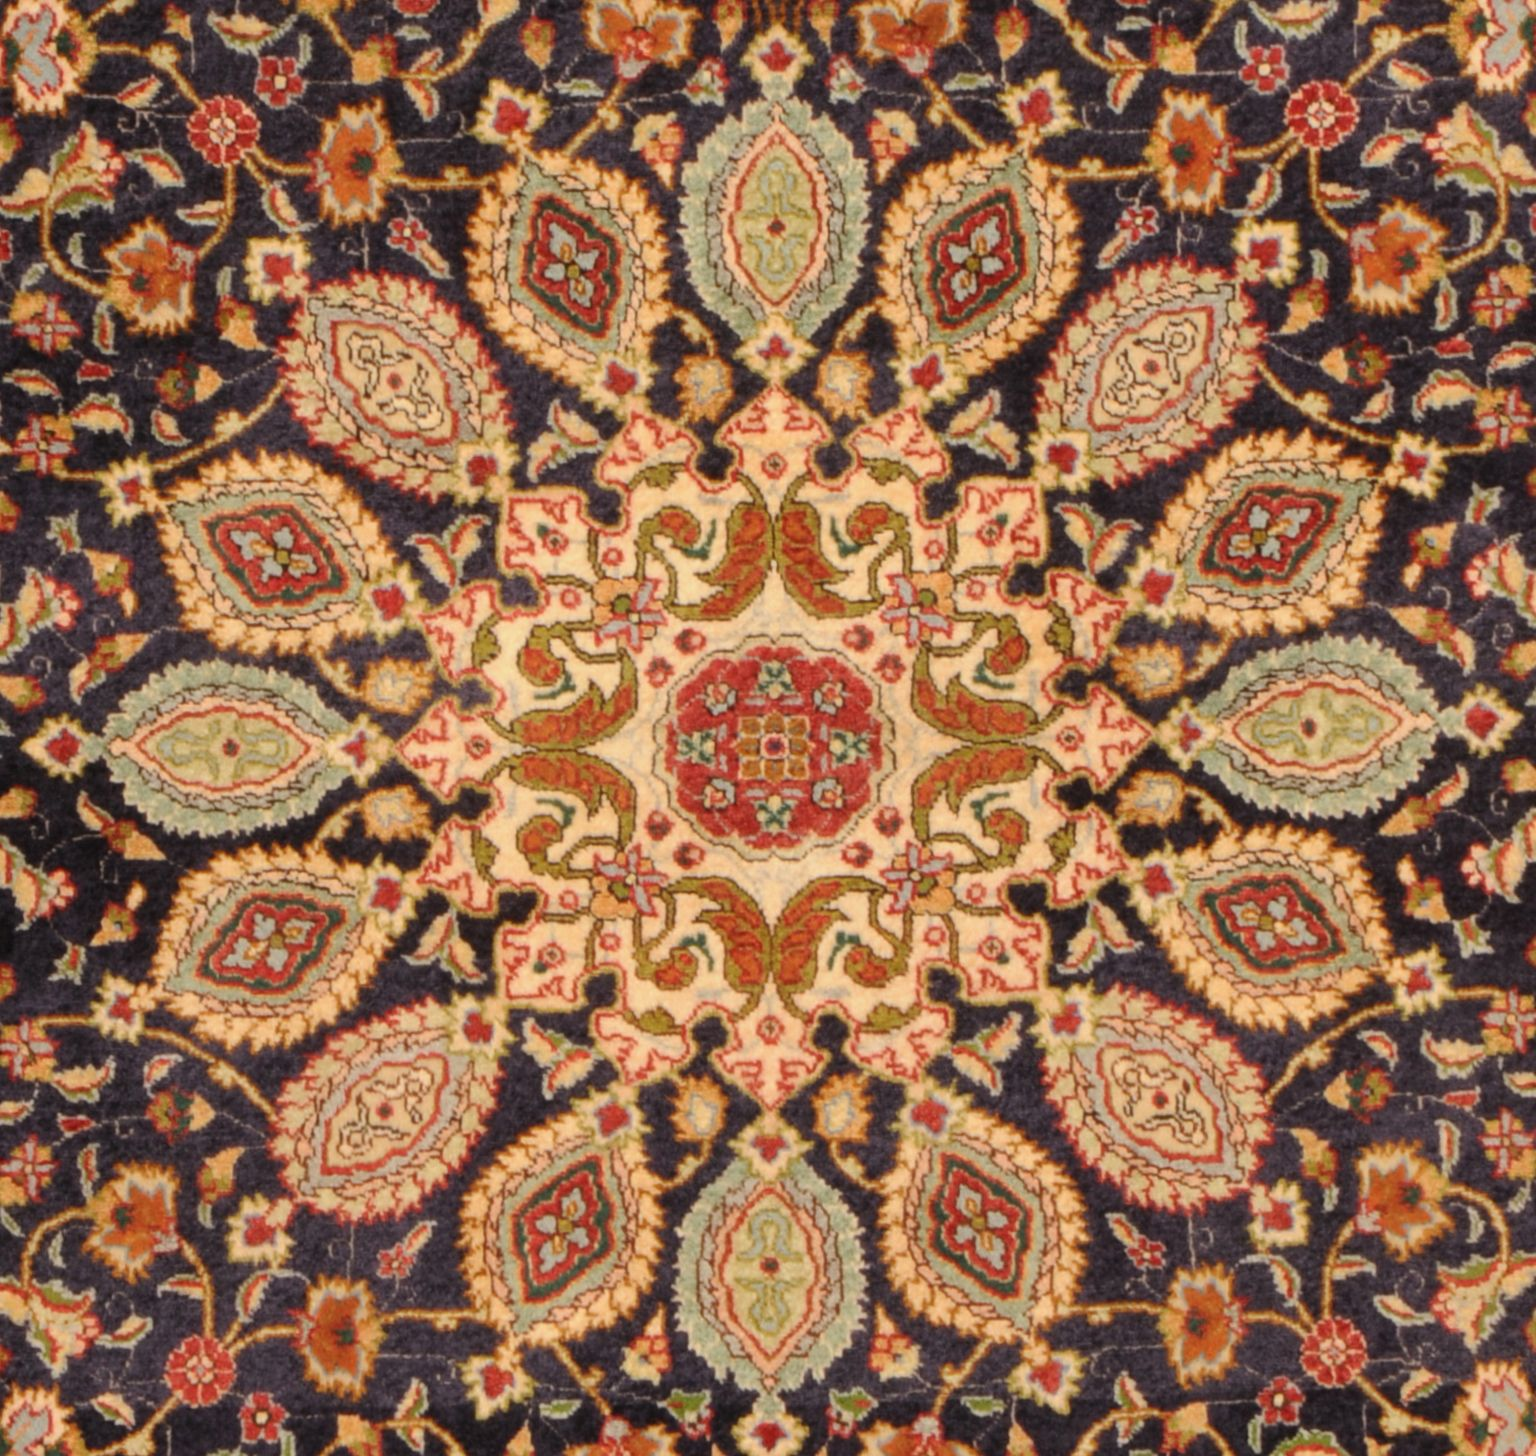 analysis of the persian carpet Tribal rugs, such as primitive persian gabbeh or kurdish carpets and are woven by nomadic peoples who weave mainly on portable looms as they travel because of this, the rugs that are tribal are generally smaller than those rugs produced in large weaving centers like tabriz or arak ( sultanabad .